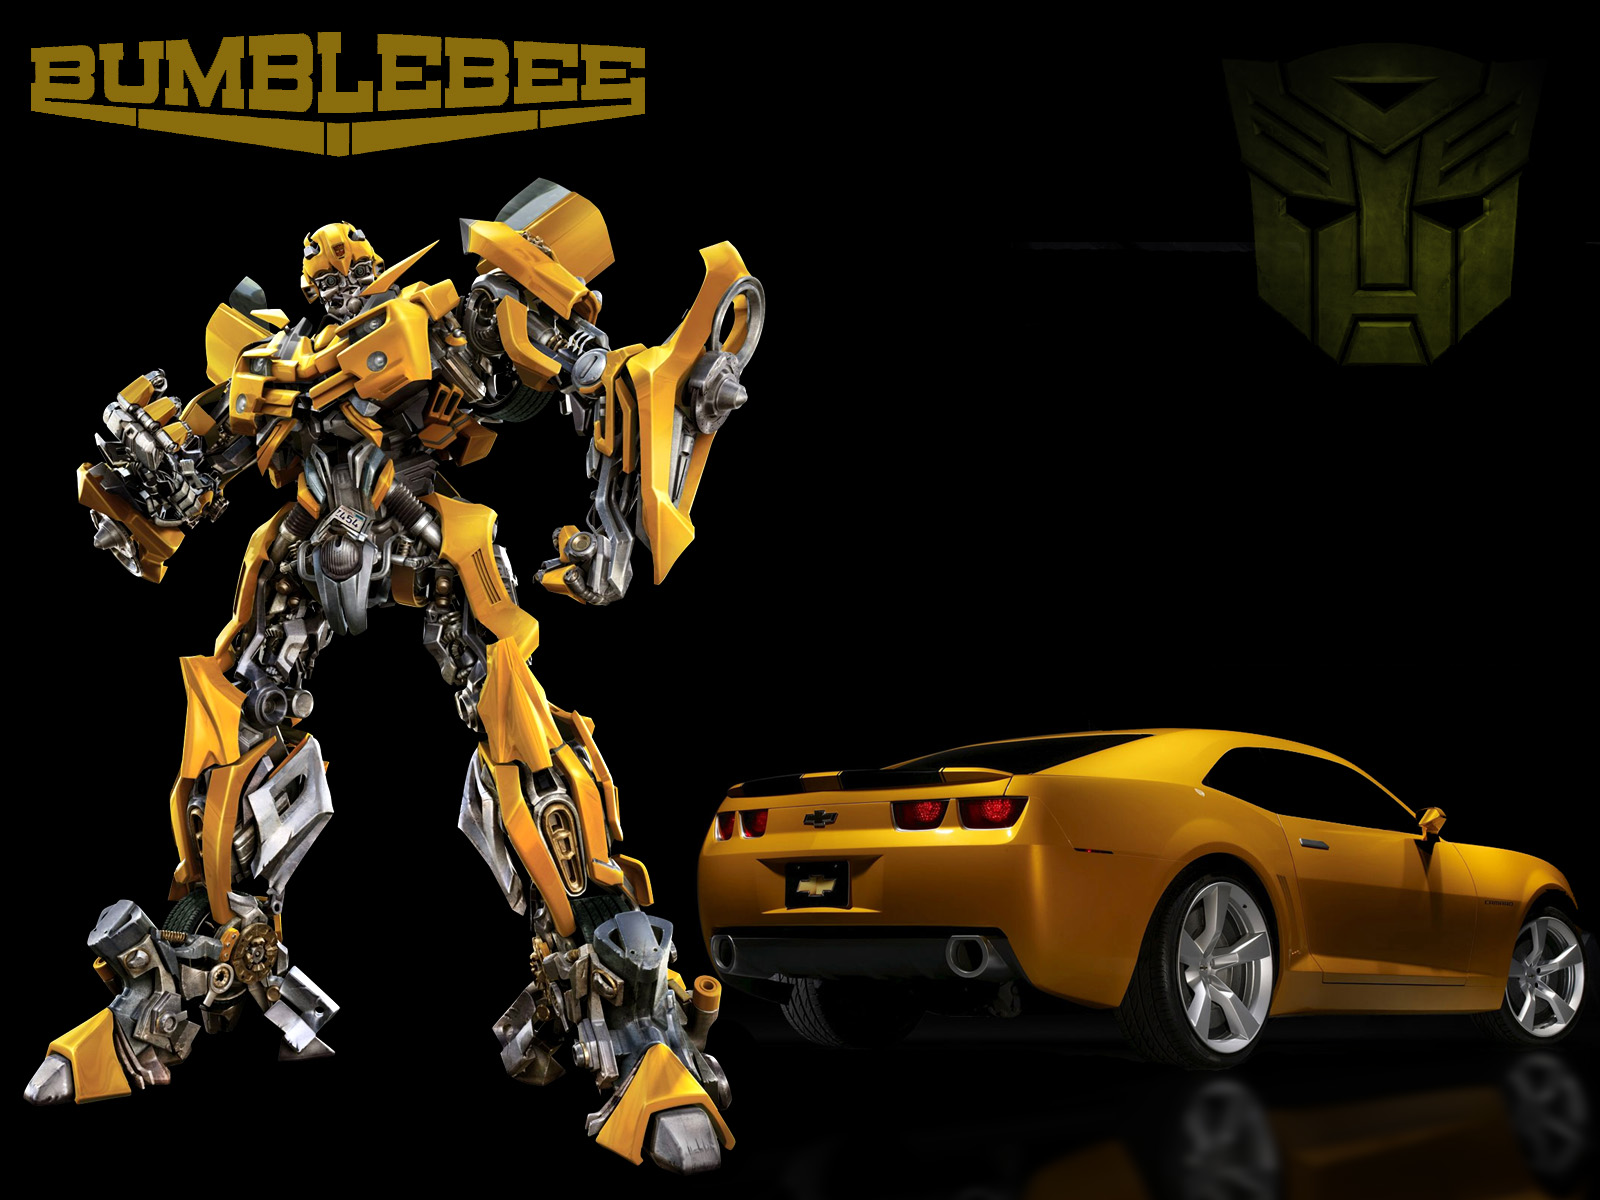 wallpaper named Transformers movie 5. It has been viewed 1661 times.